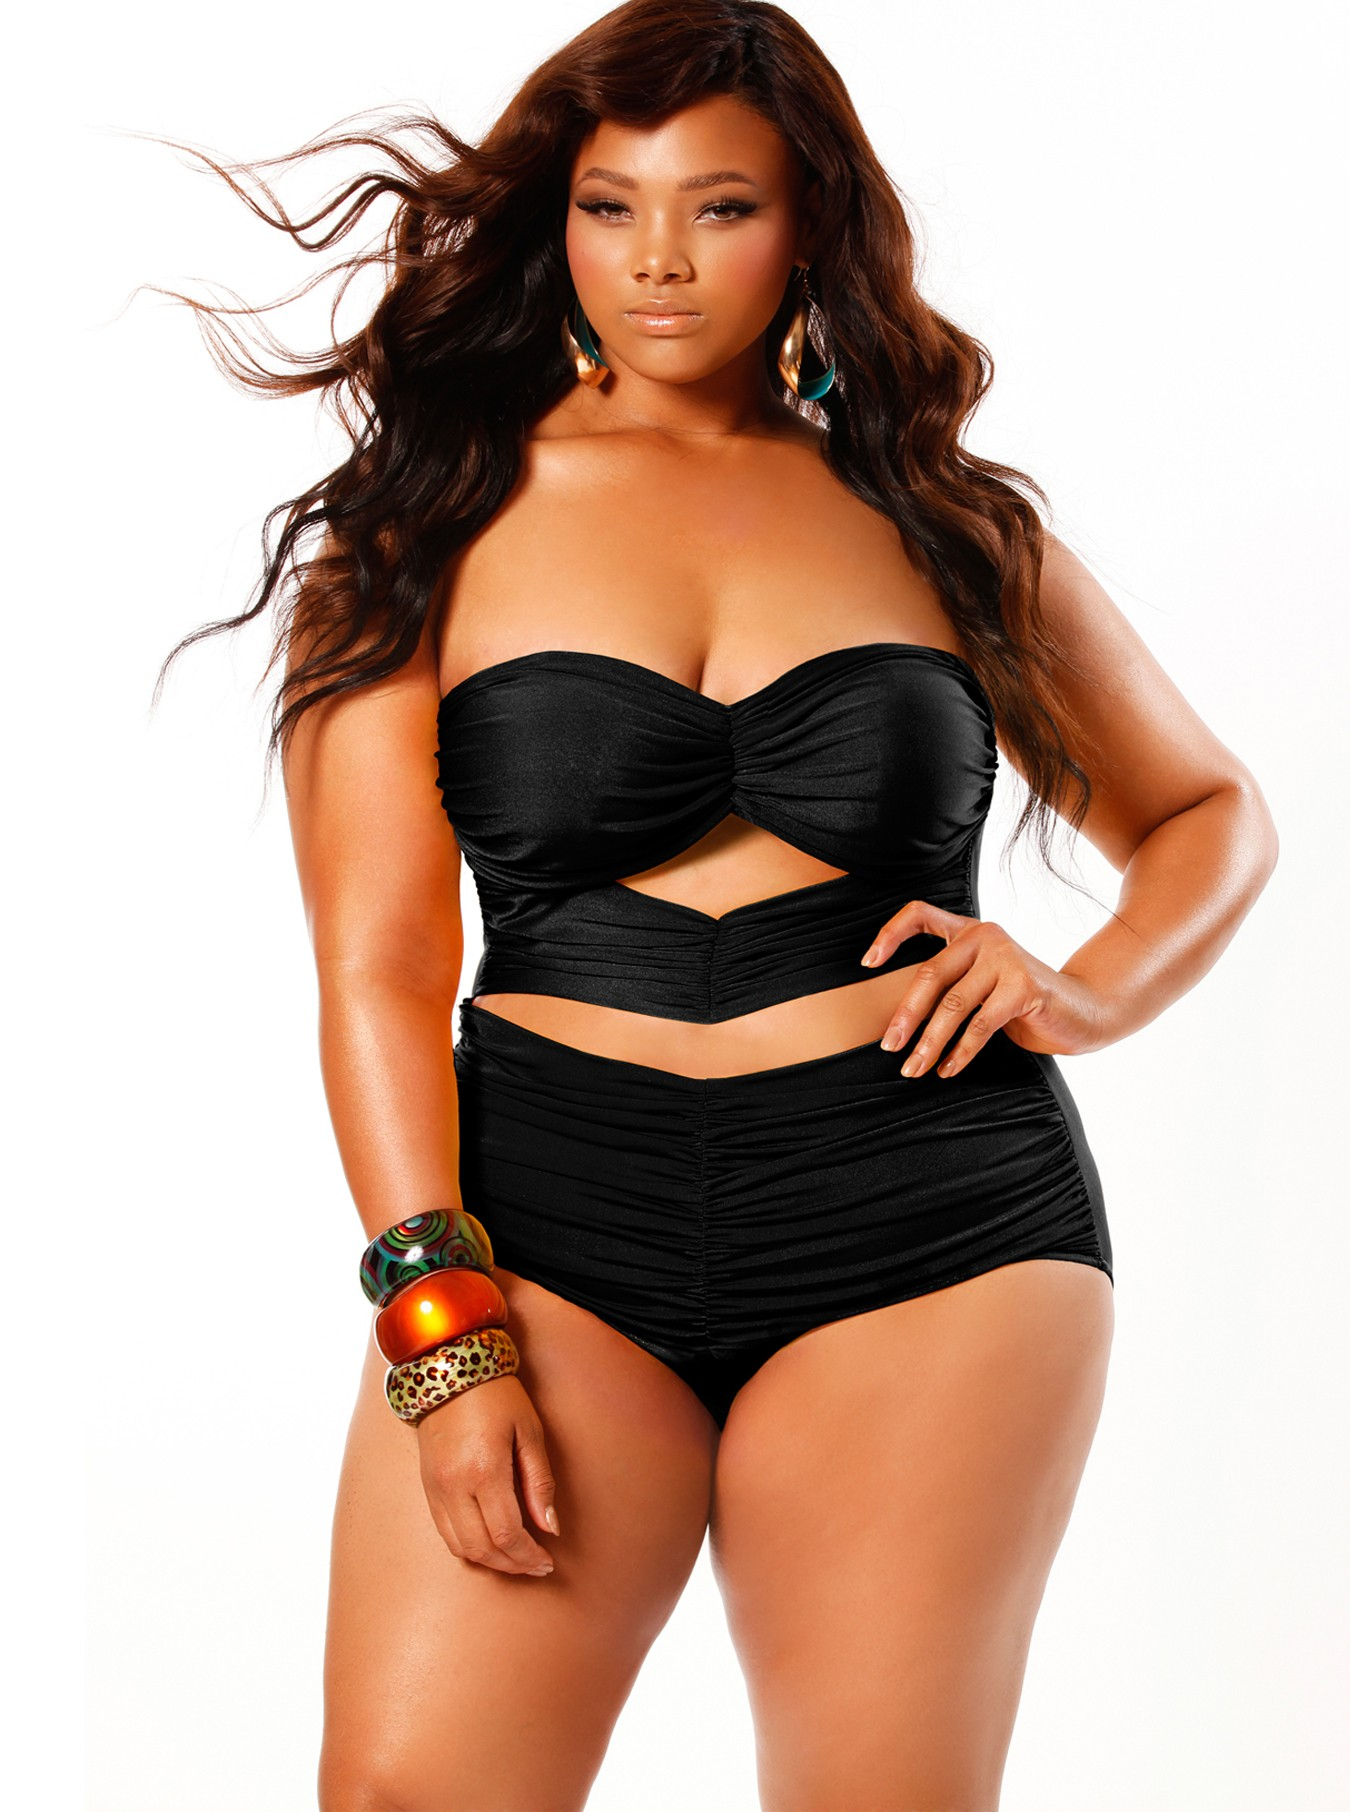 Plus size swimsuit bikini model